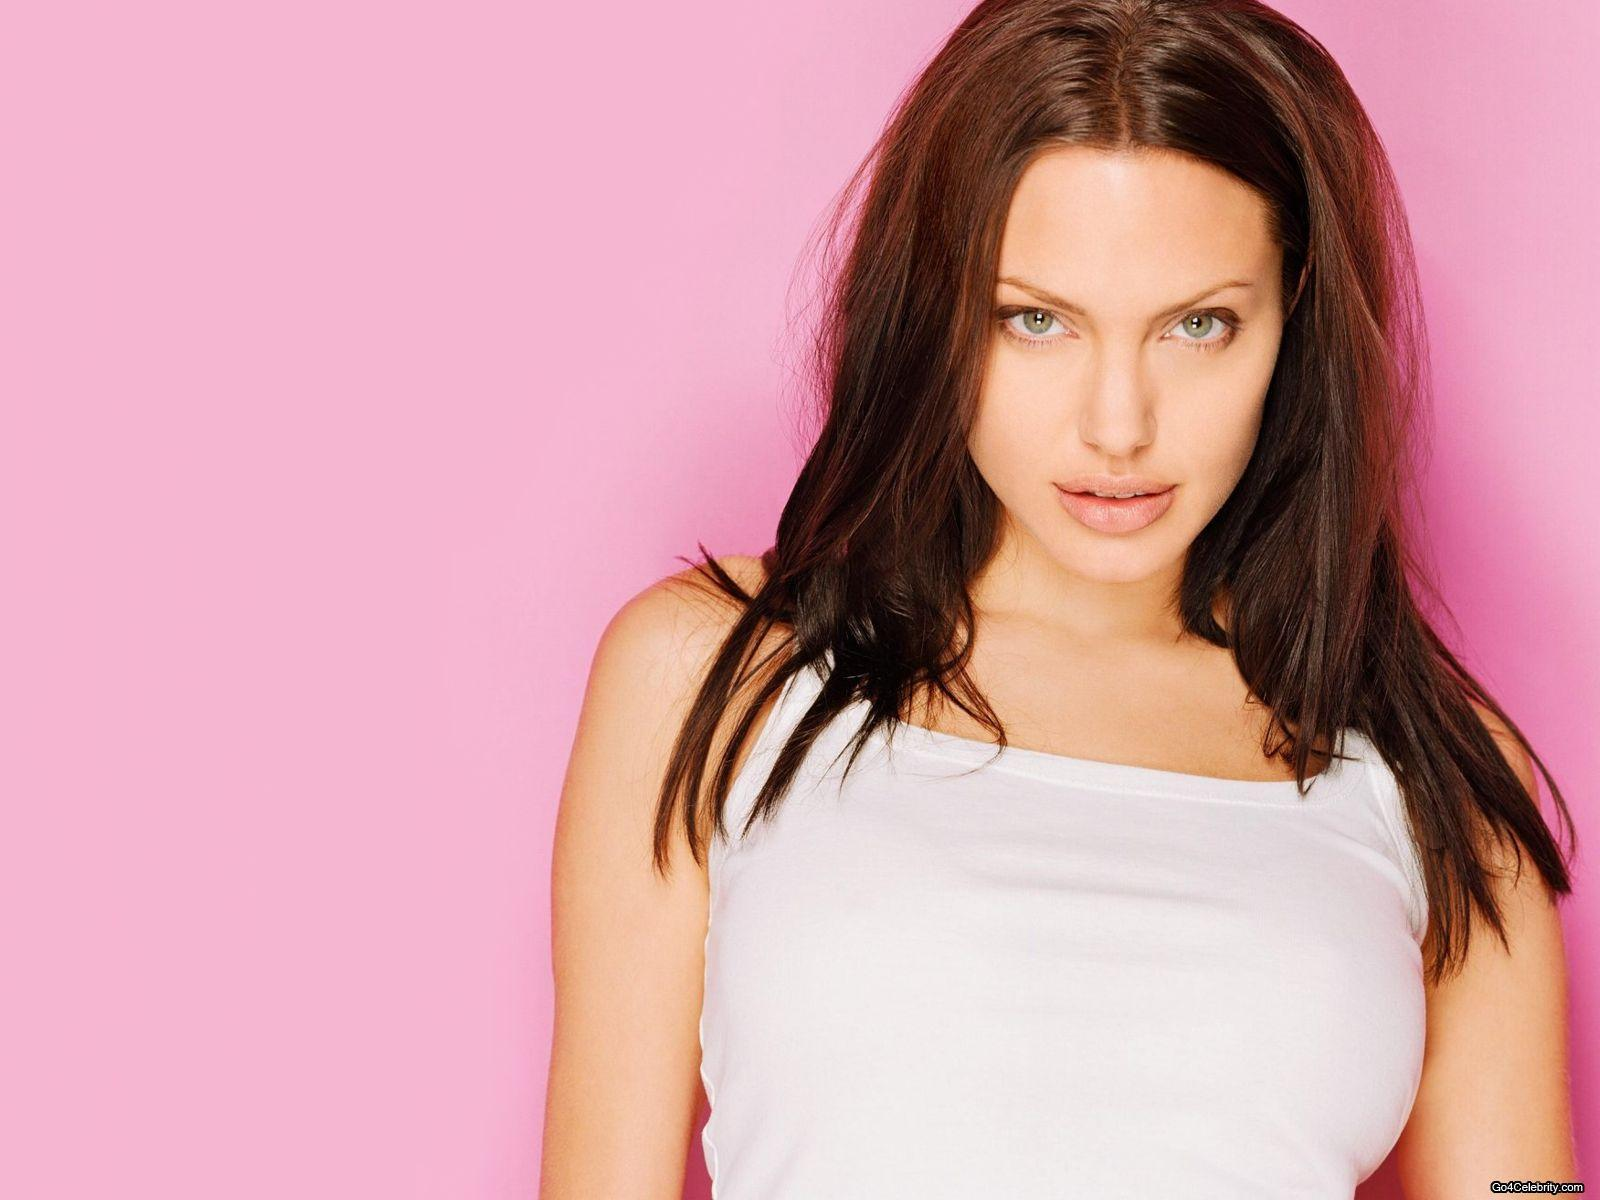 Download this Angelina Jolie Sexy Images picture